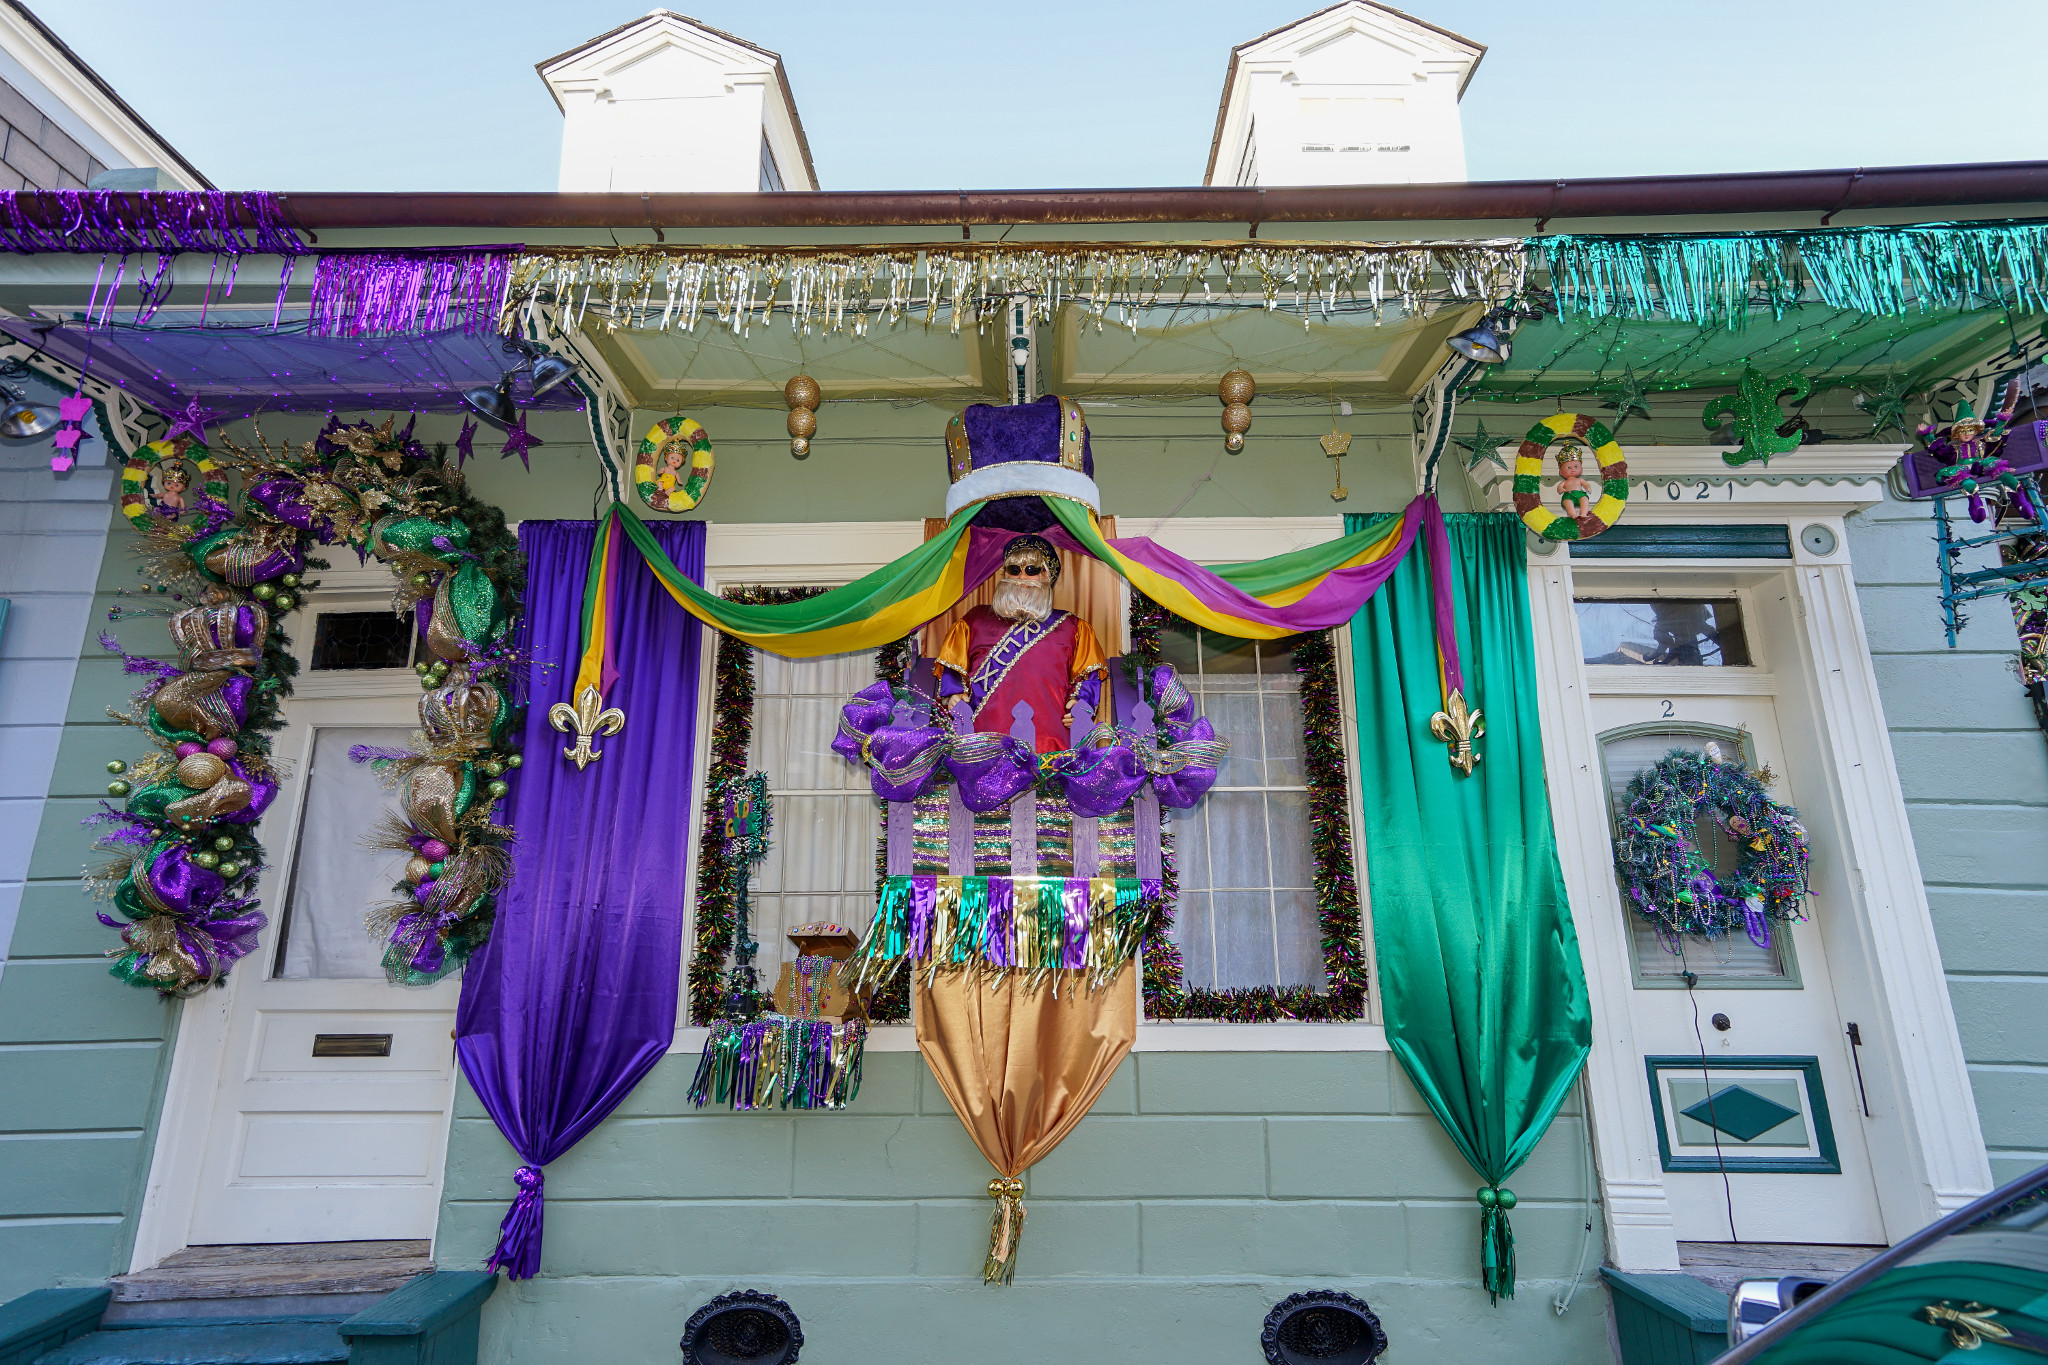 fe39e0468a3 5 New Orleans Houses Dressed up for Mardi Gras